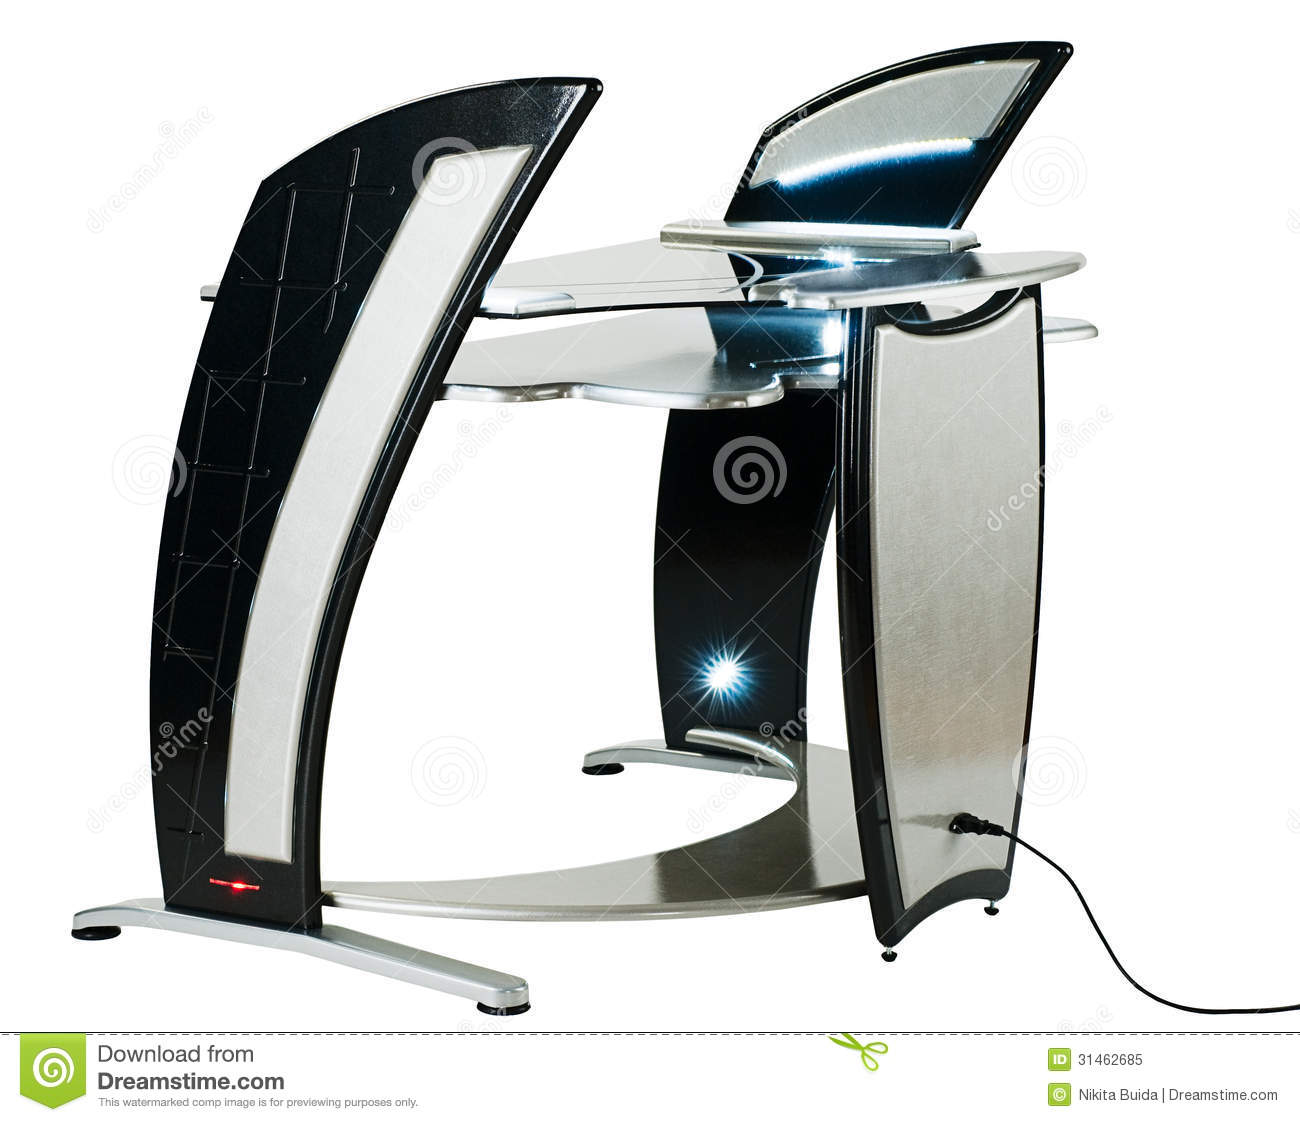 royaltyfree stock photo download modern computer desk